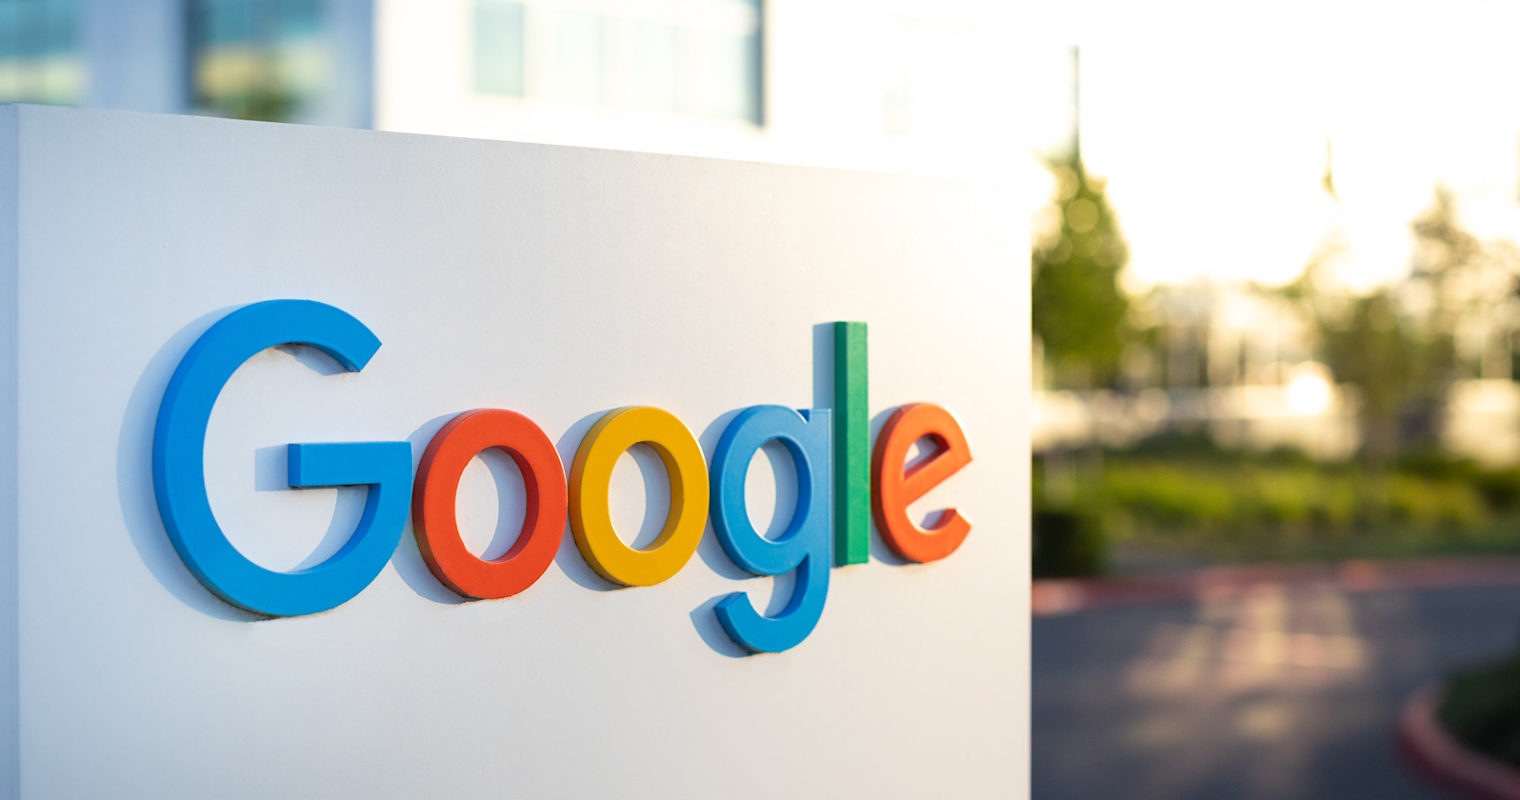 Google Responds to Criticism Regarding Desktop Search Changes